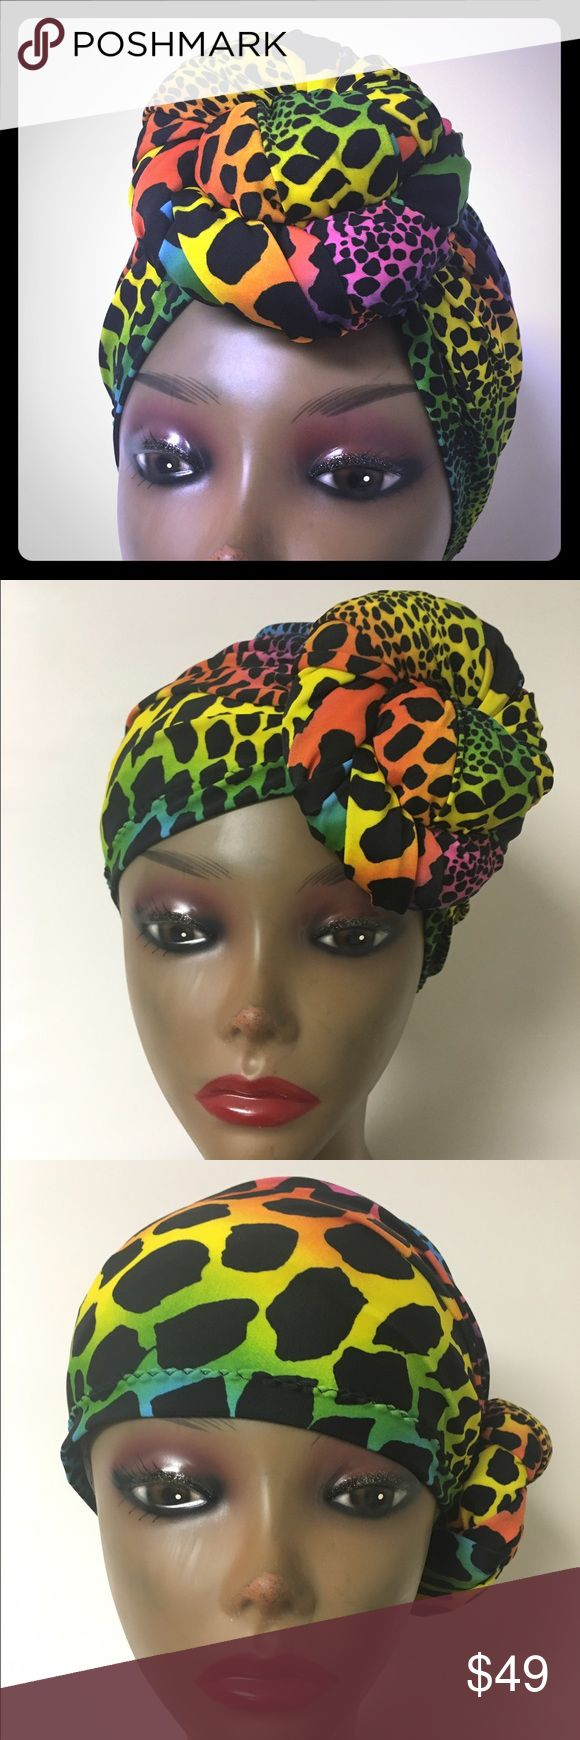 """""""New"""" Pre-Knotted Turban Knotted  turban can be worn four ways. Seamless full cap coverage for, Naturalistas, Resort wear, long term Hospital  Stays Chemotherapy patients women with hair loss, Working out, Bad hair days or just making a Fashion Statement.One size fits most 21-23 circumference. Turban Fabulous Accessories Hats"""